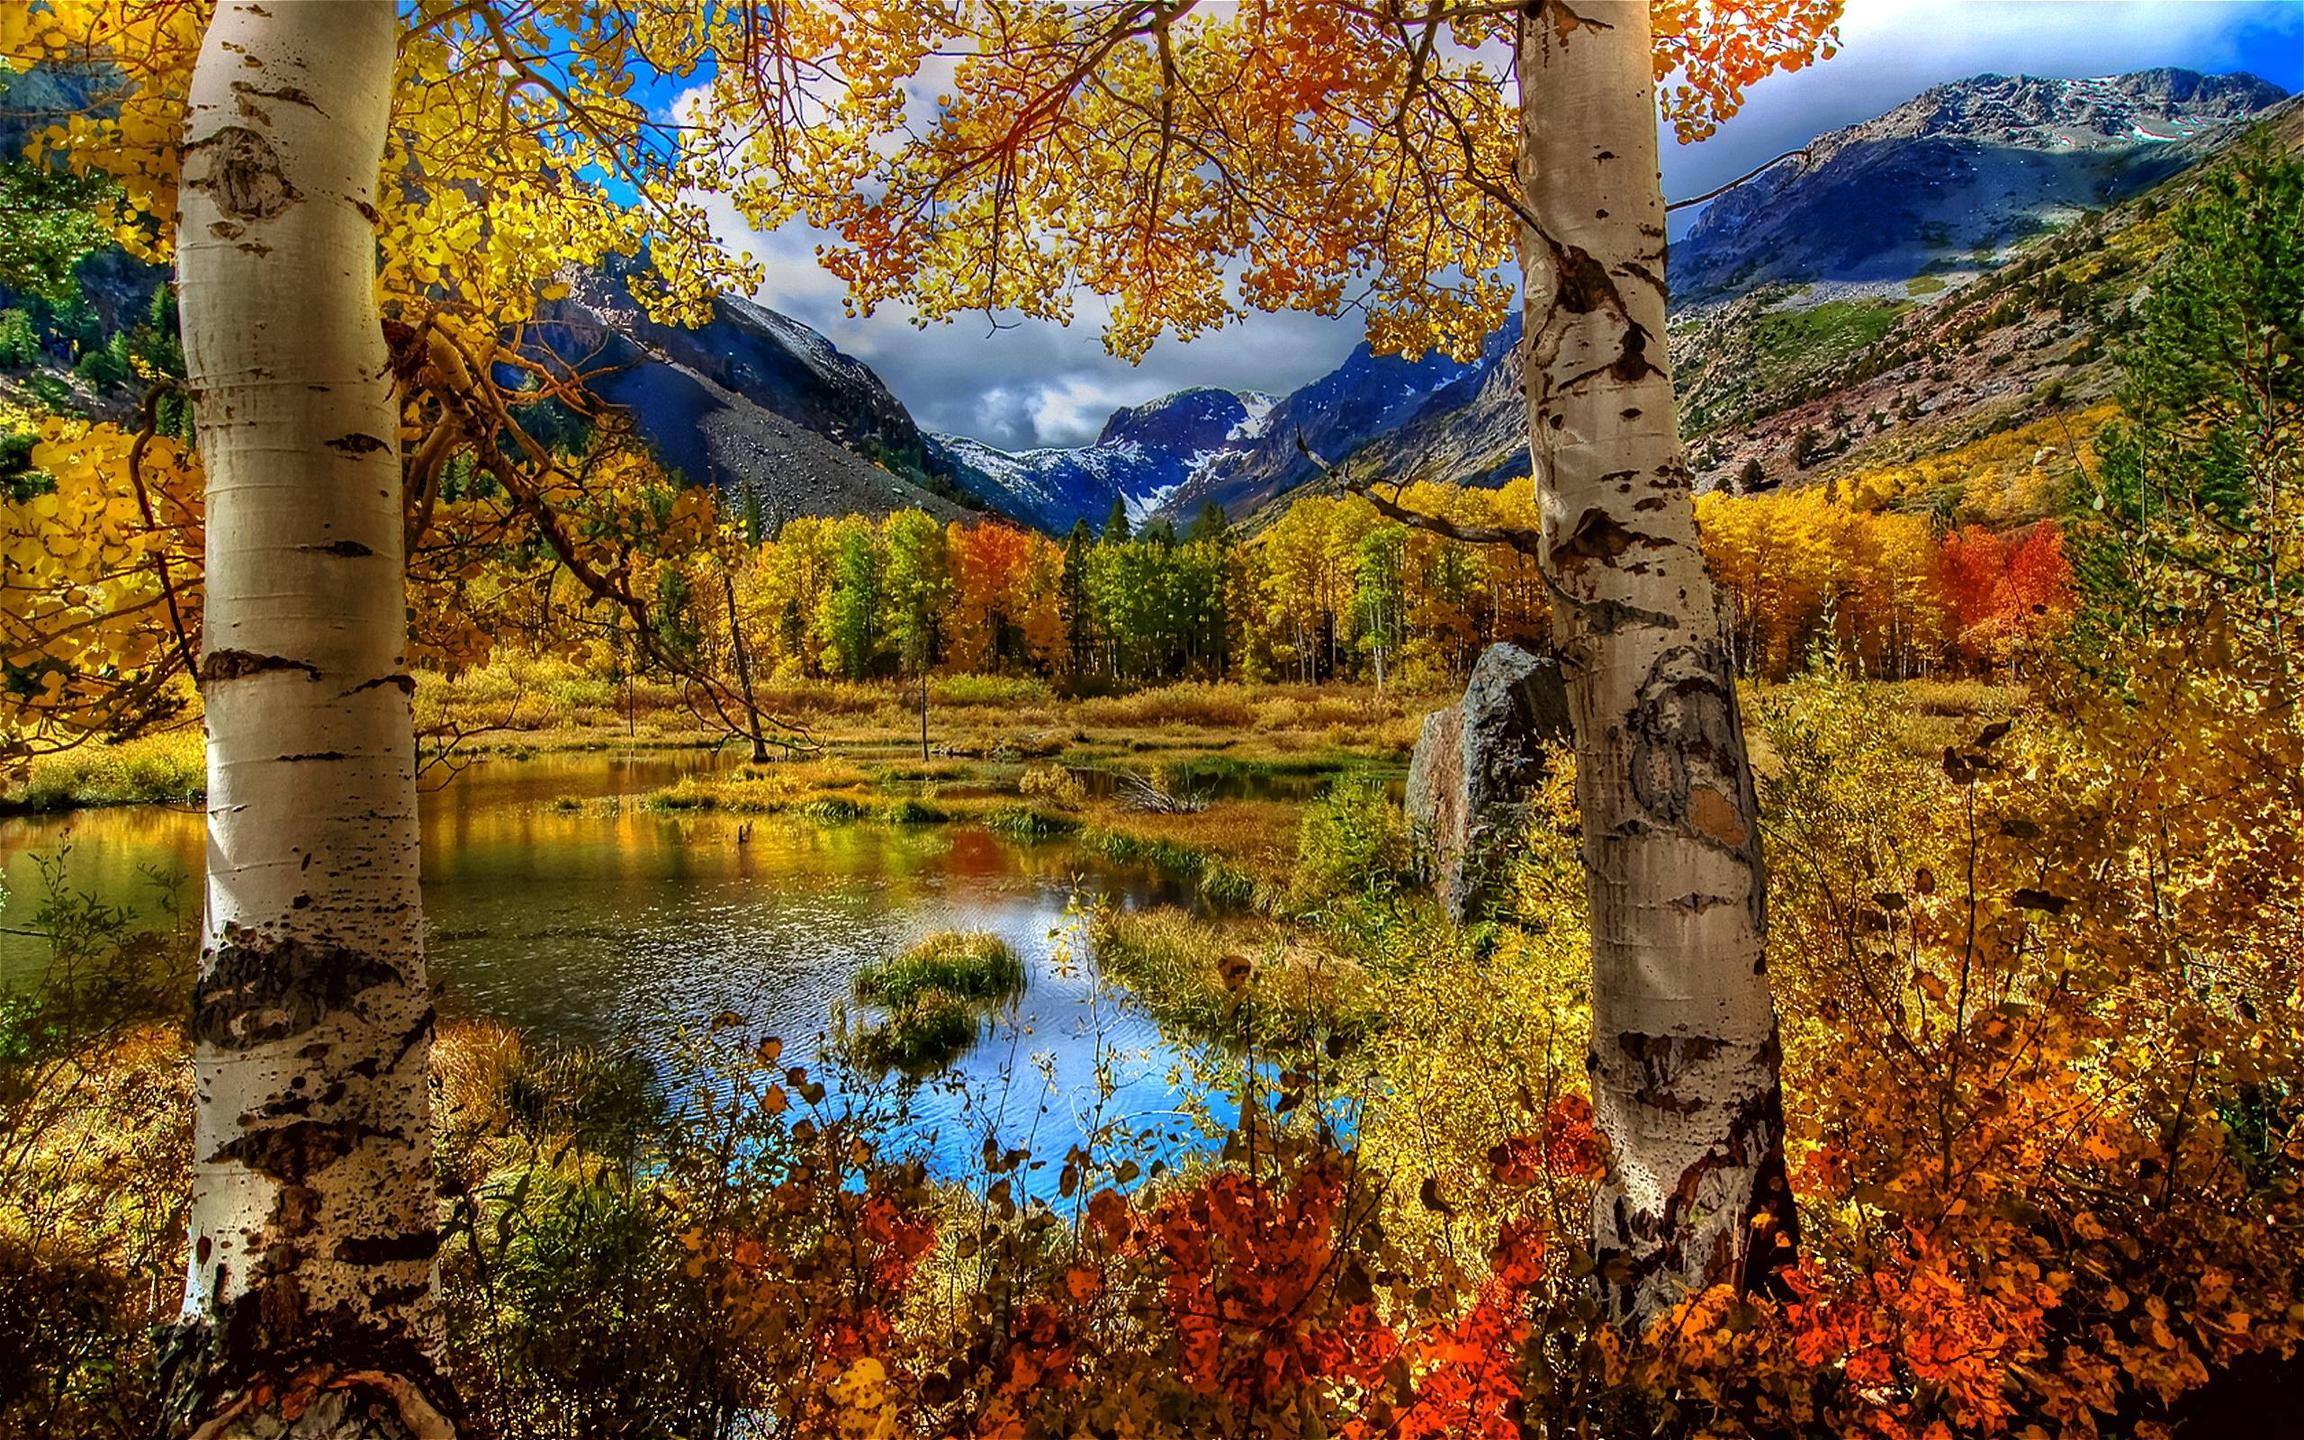 Autumn Scenery wallpaper   wallpapers download wallpaper 2304x1440